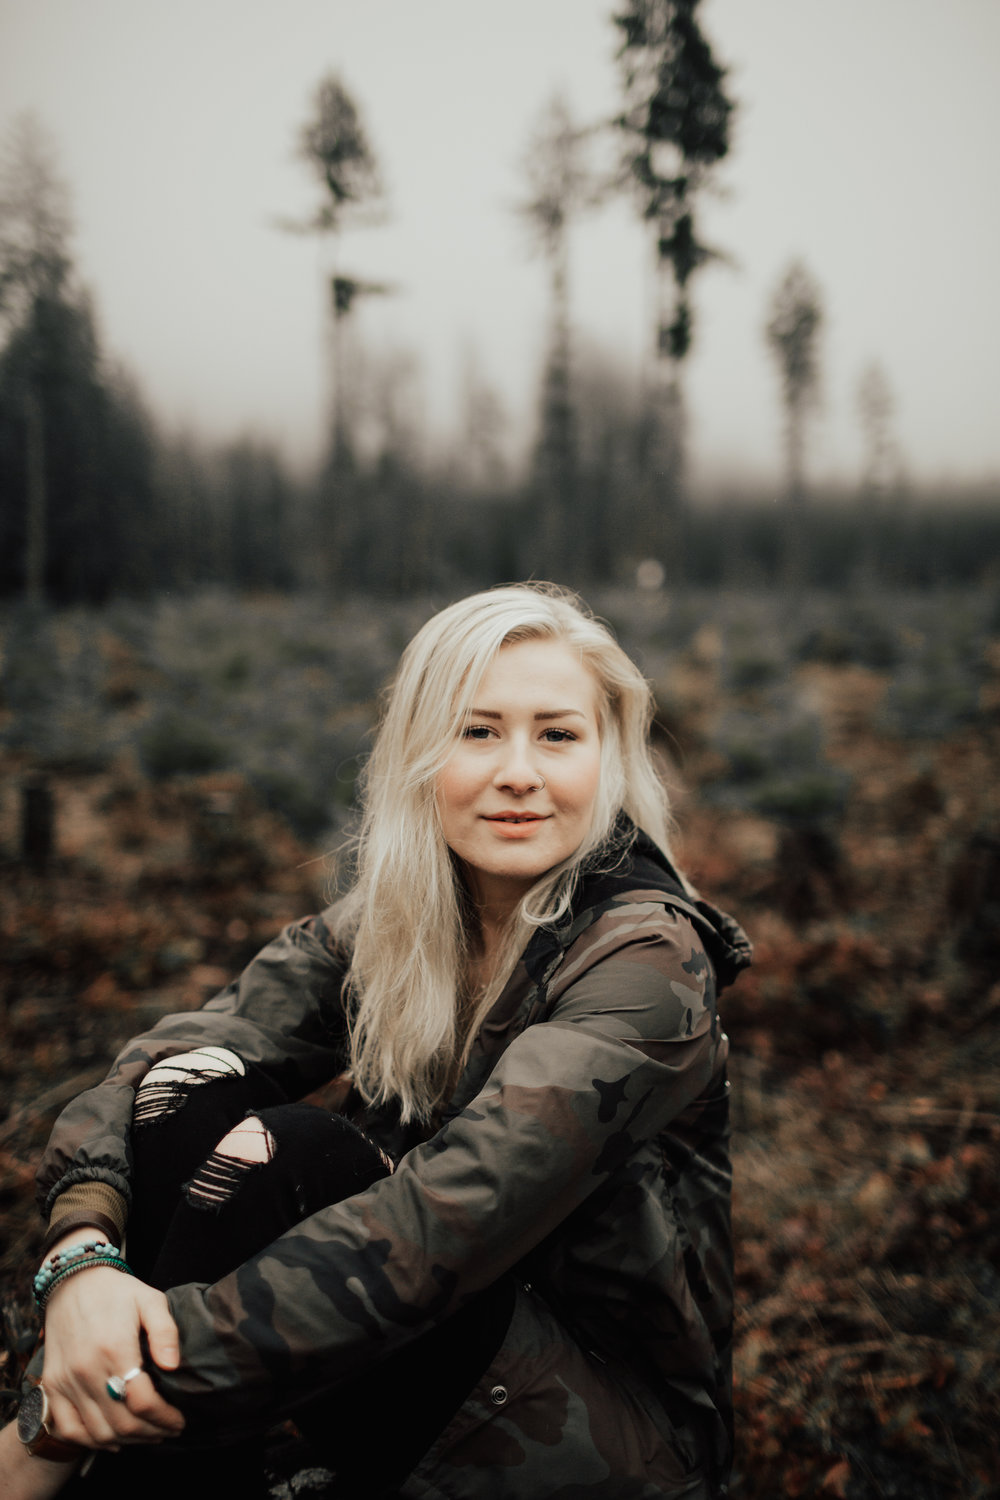 Port Angeles-Portrait-Photographer-PNW-olympic peninsula-northwest-sequim-kayla dawn photography-kayladawnphoto-portraiture-nature55.jpg